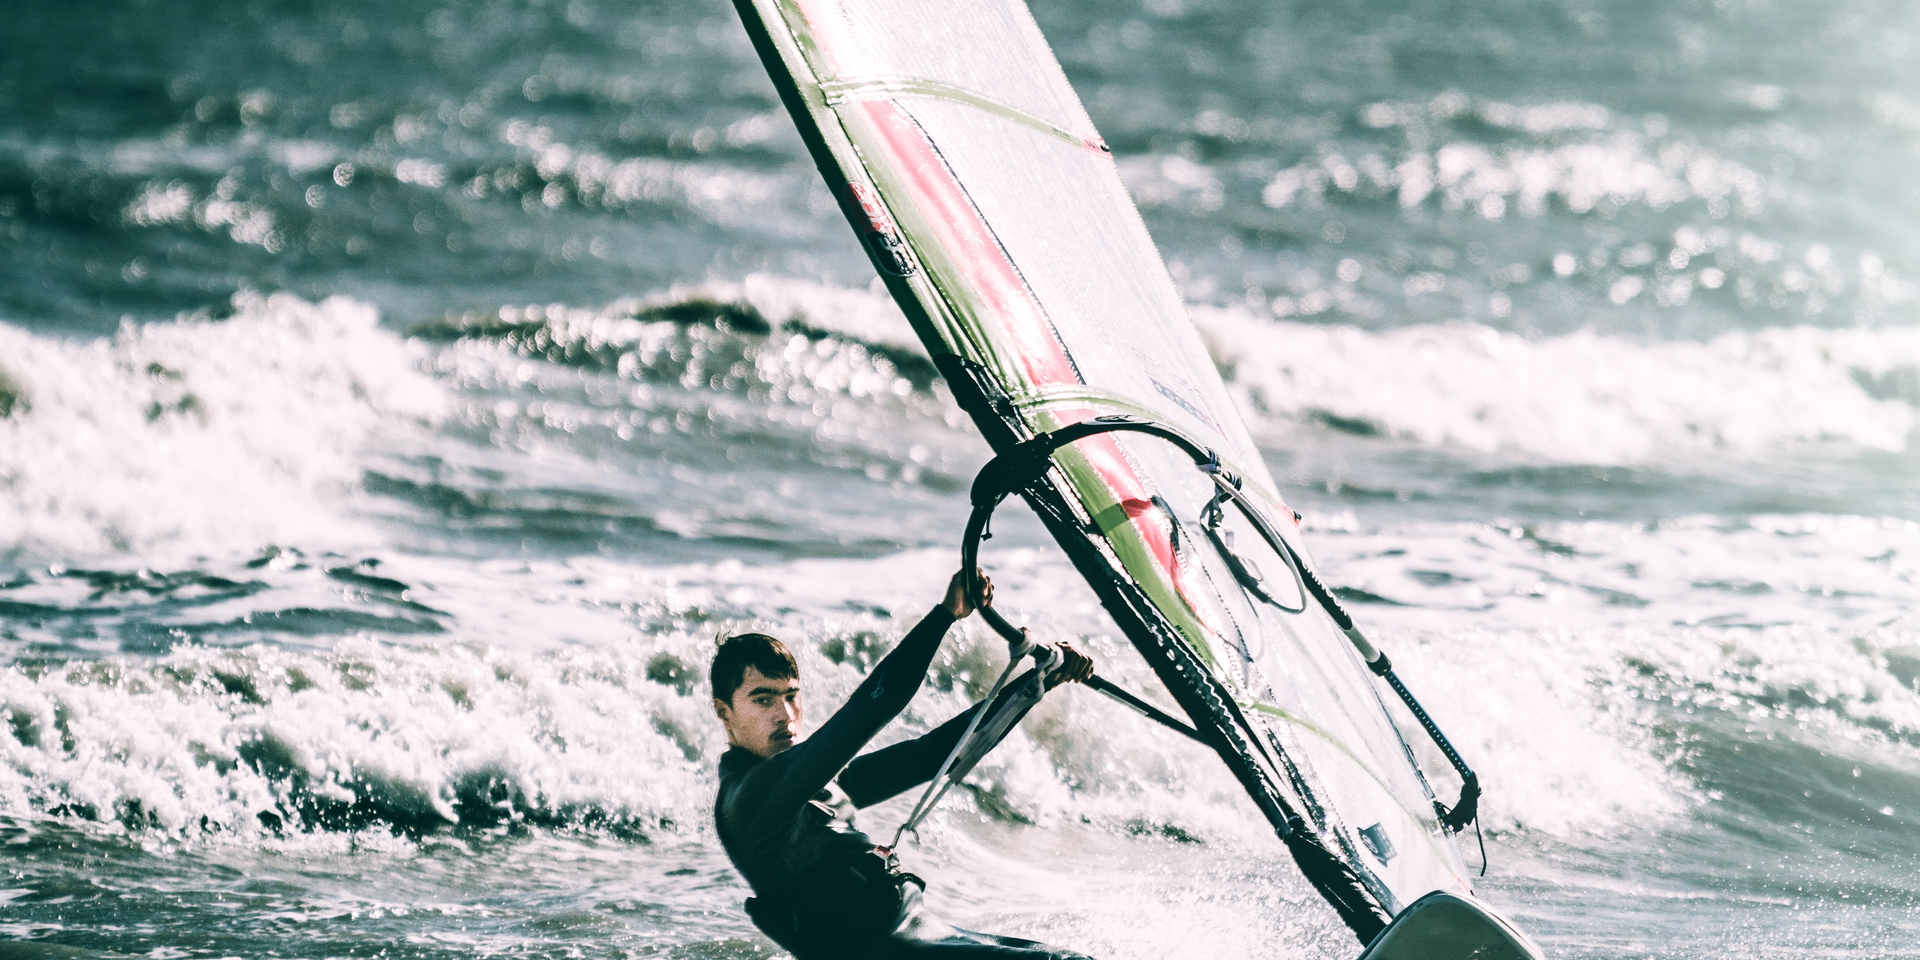 windsurfing-in-summer-1983044.jpg